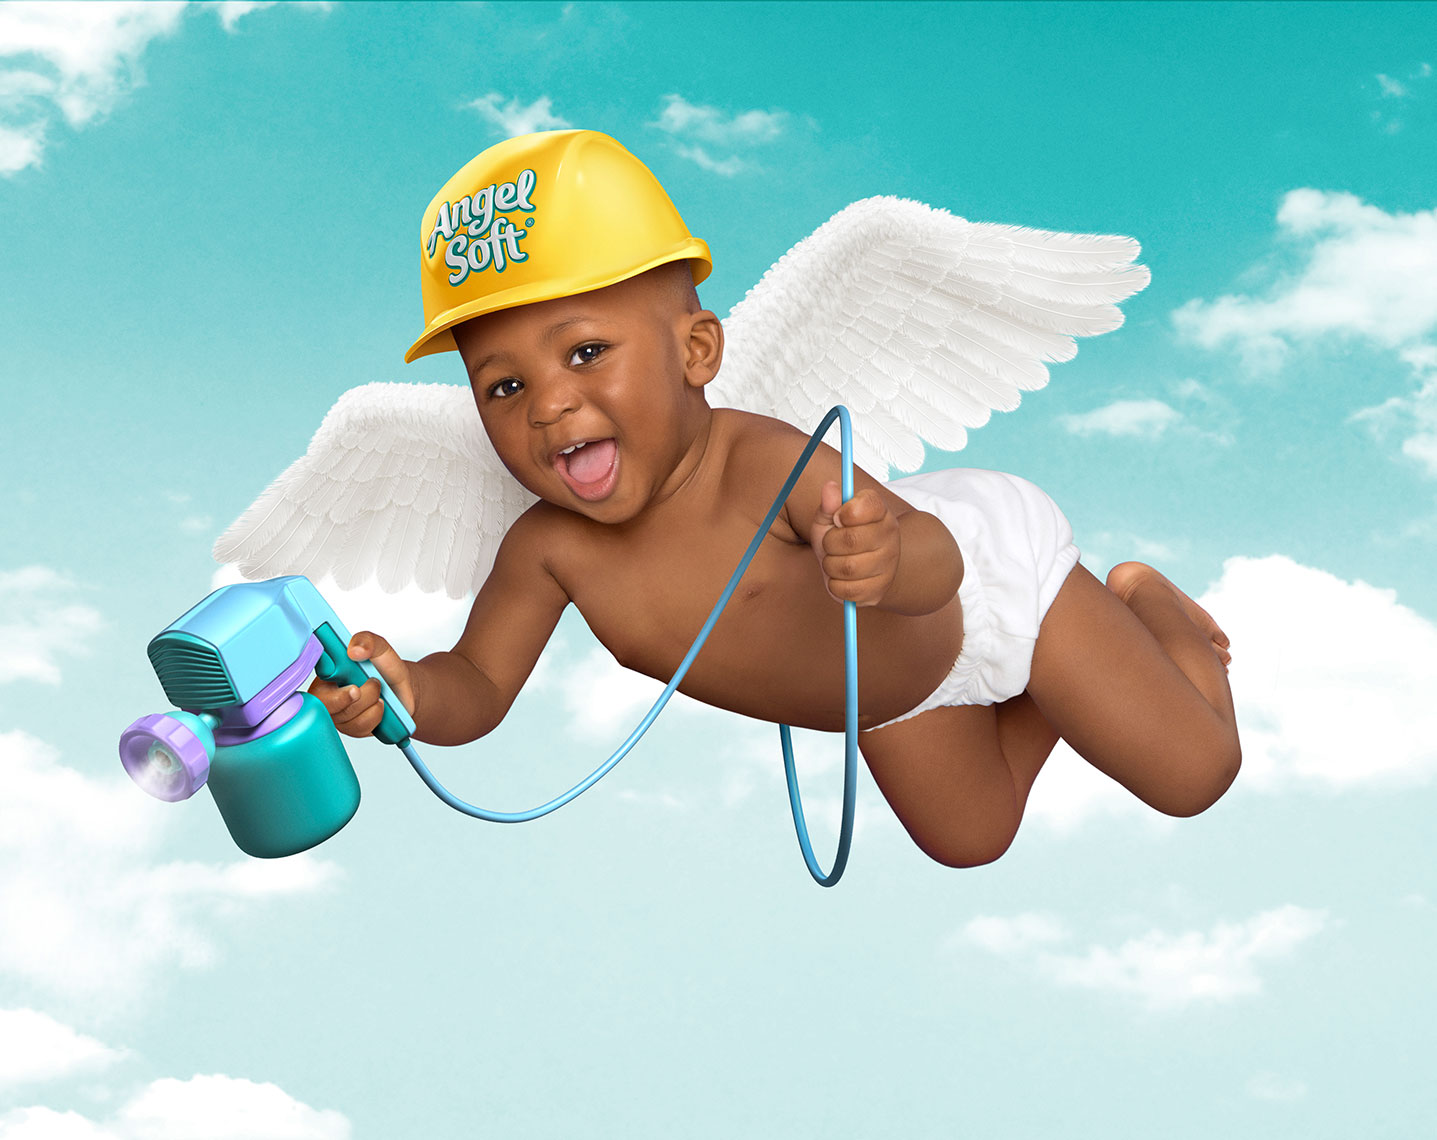 Photography, Photo Illustration, Digital Imaging and Retouching for DDB-Angel-SoftSprayer